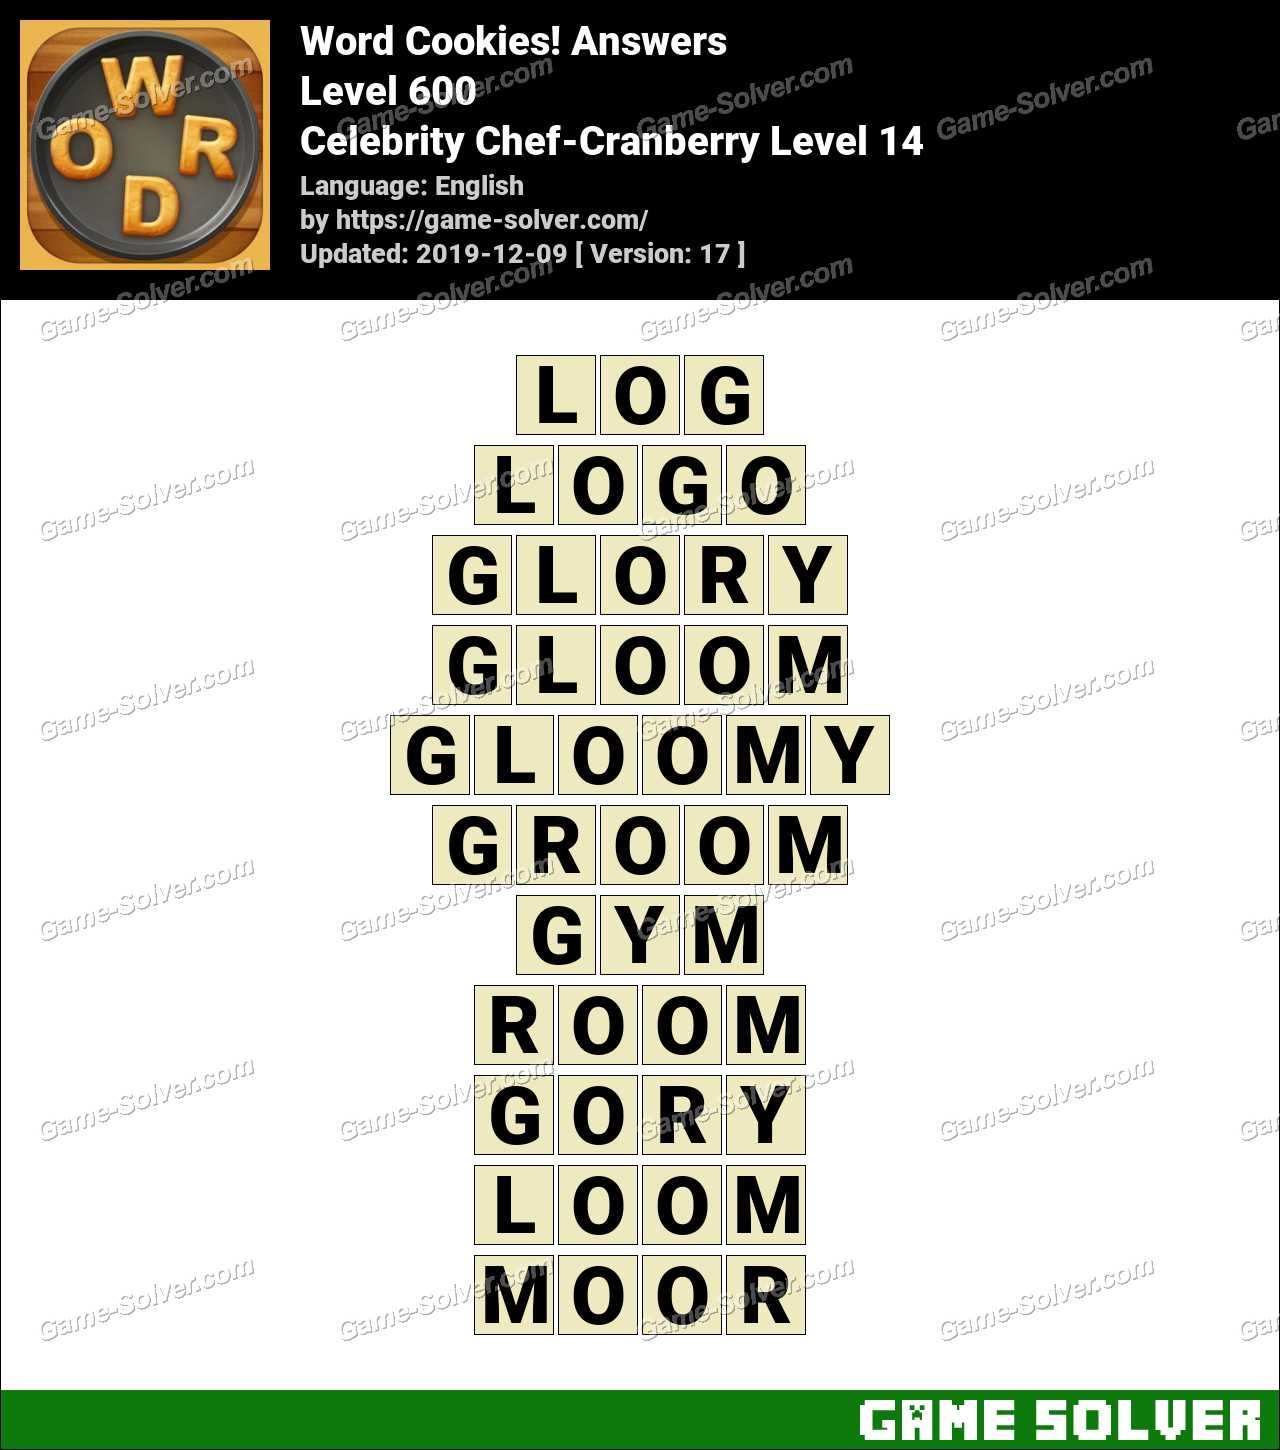 Word Cookies Celebrity Chef-Cranberry Level 14 Answers